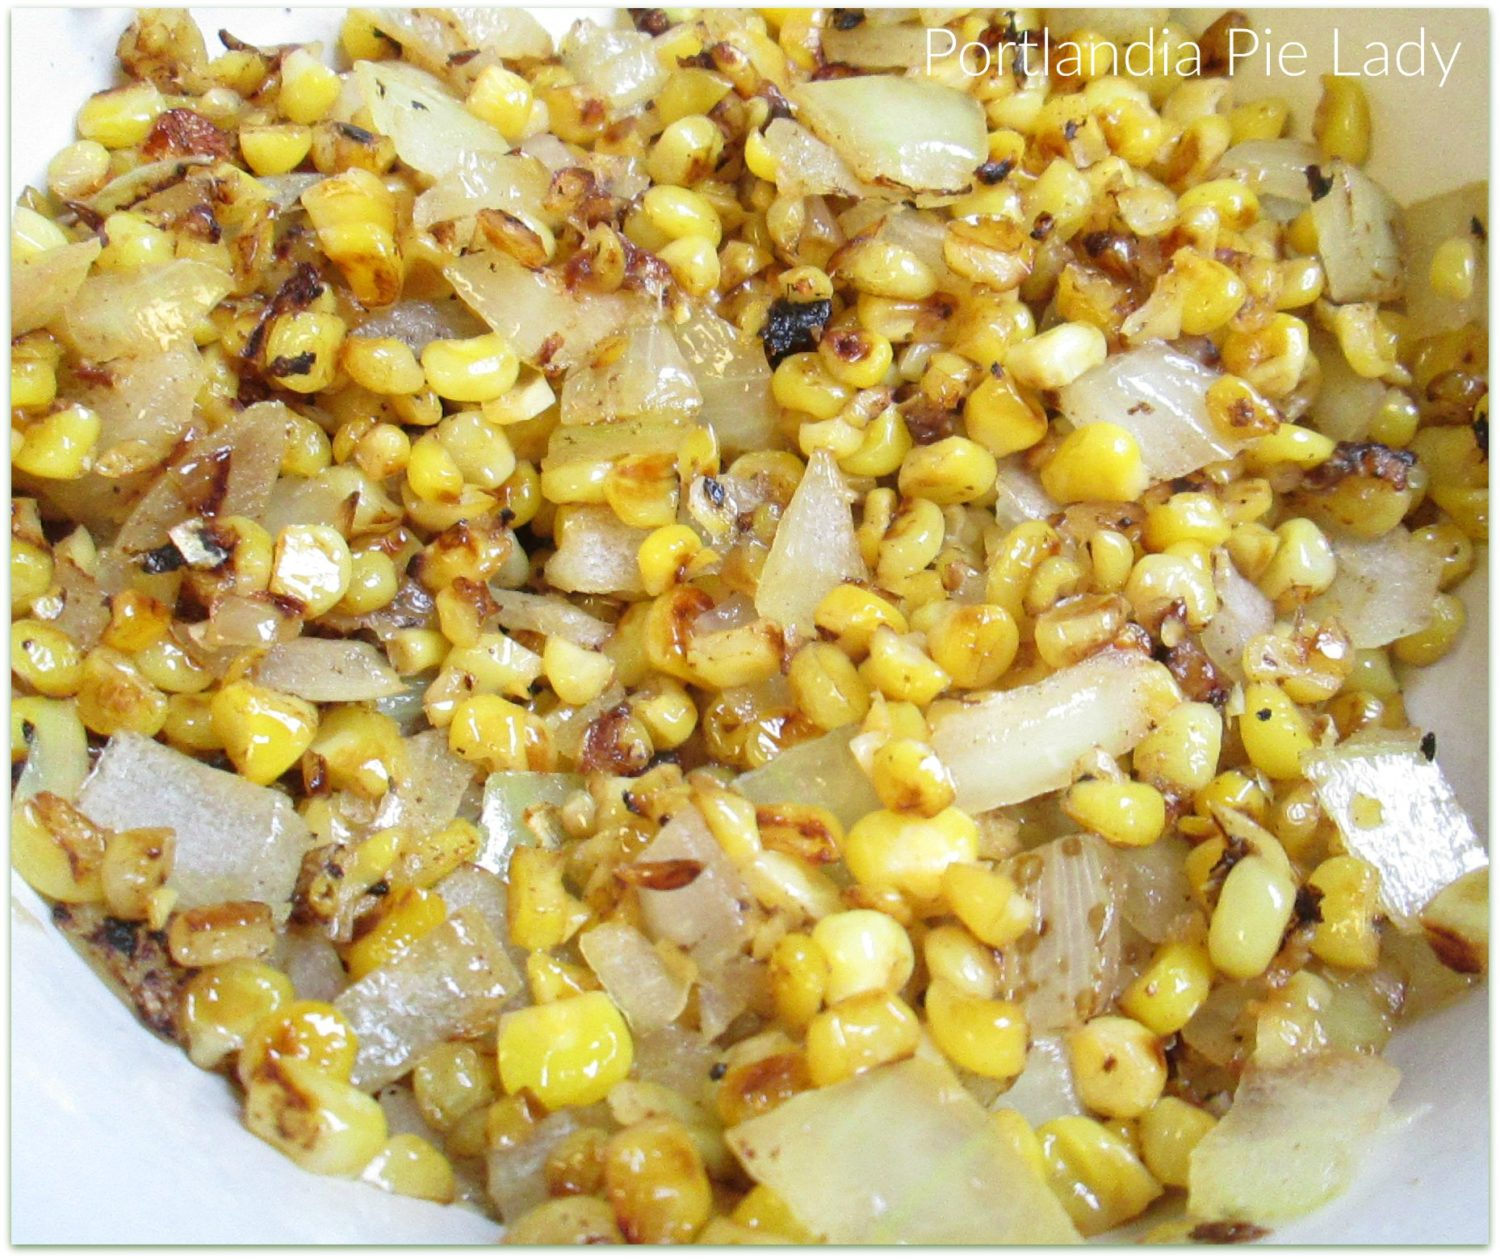 Pan-roasted corn and onions to bring out flavors.